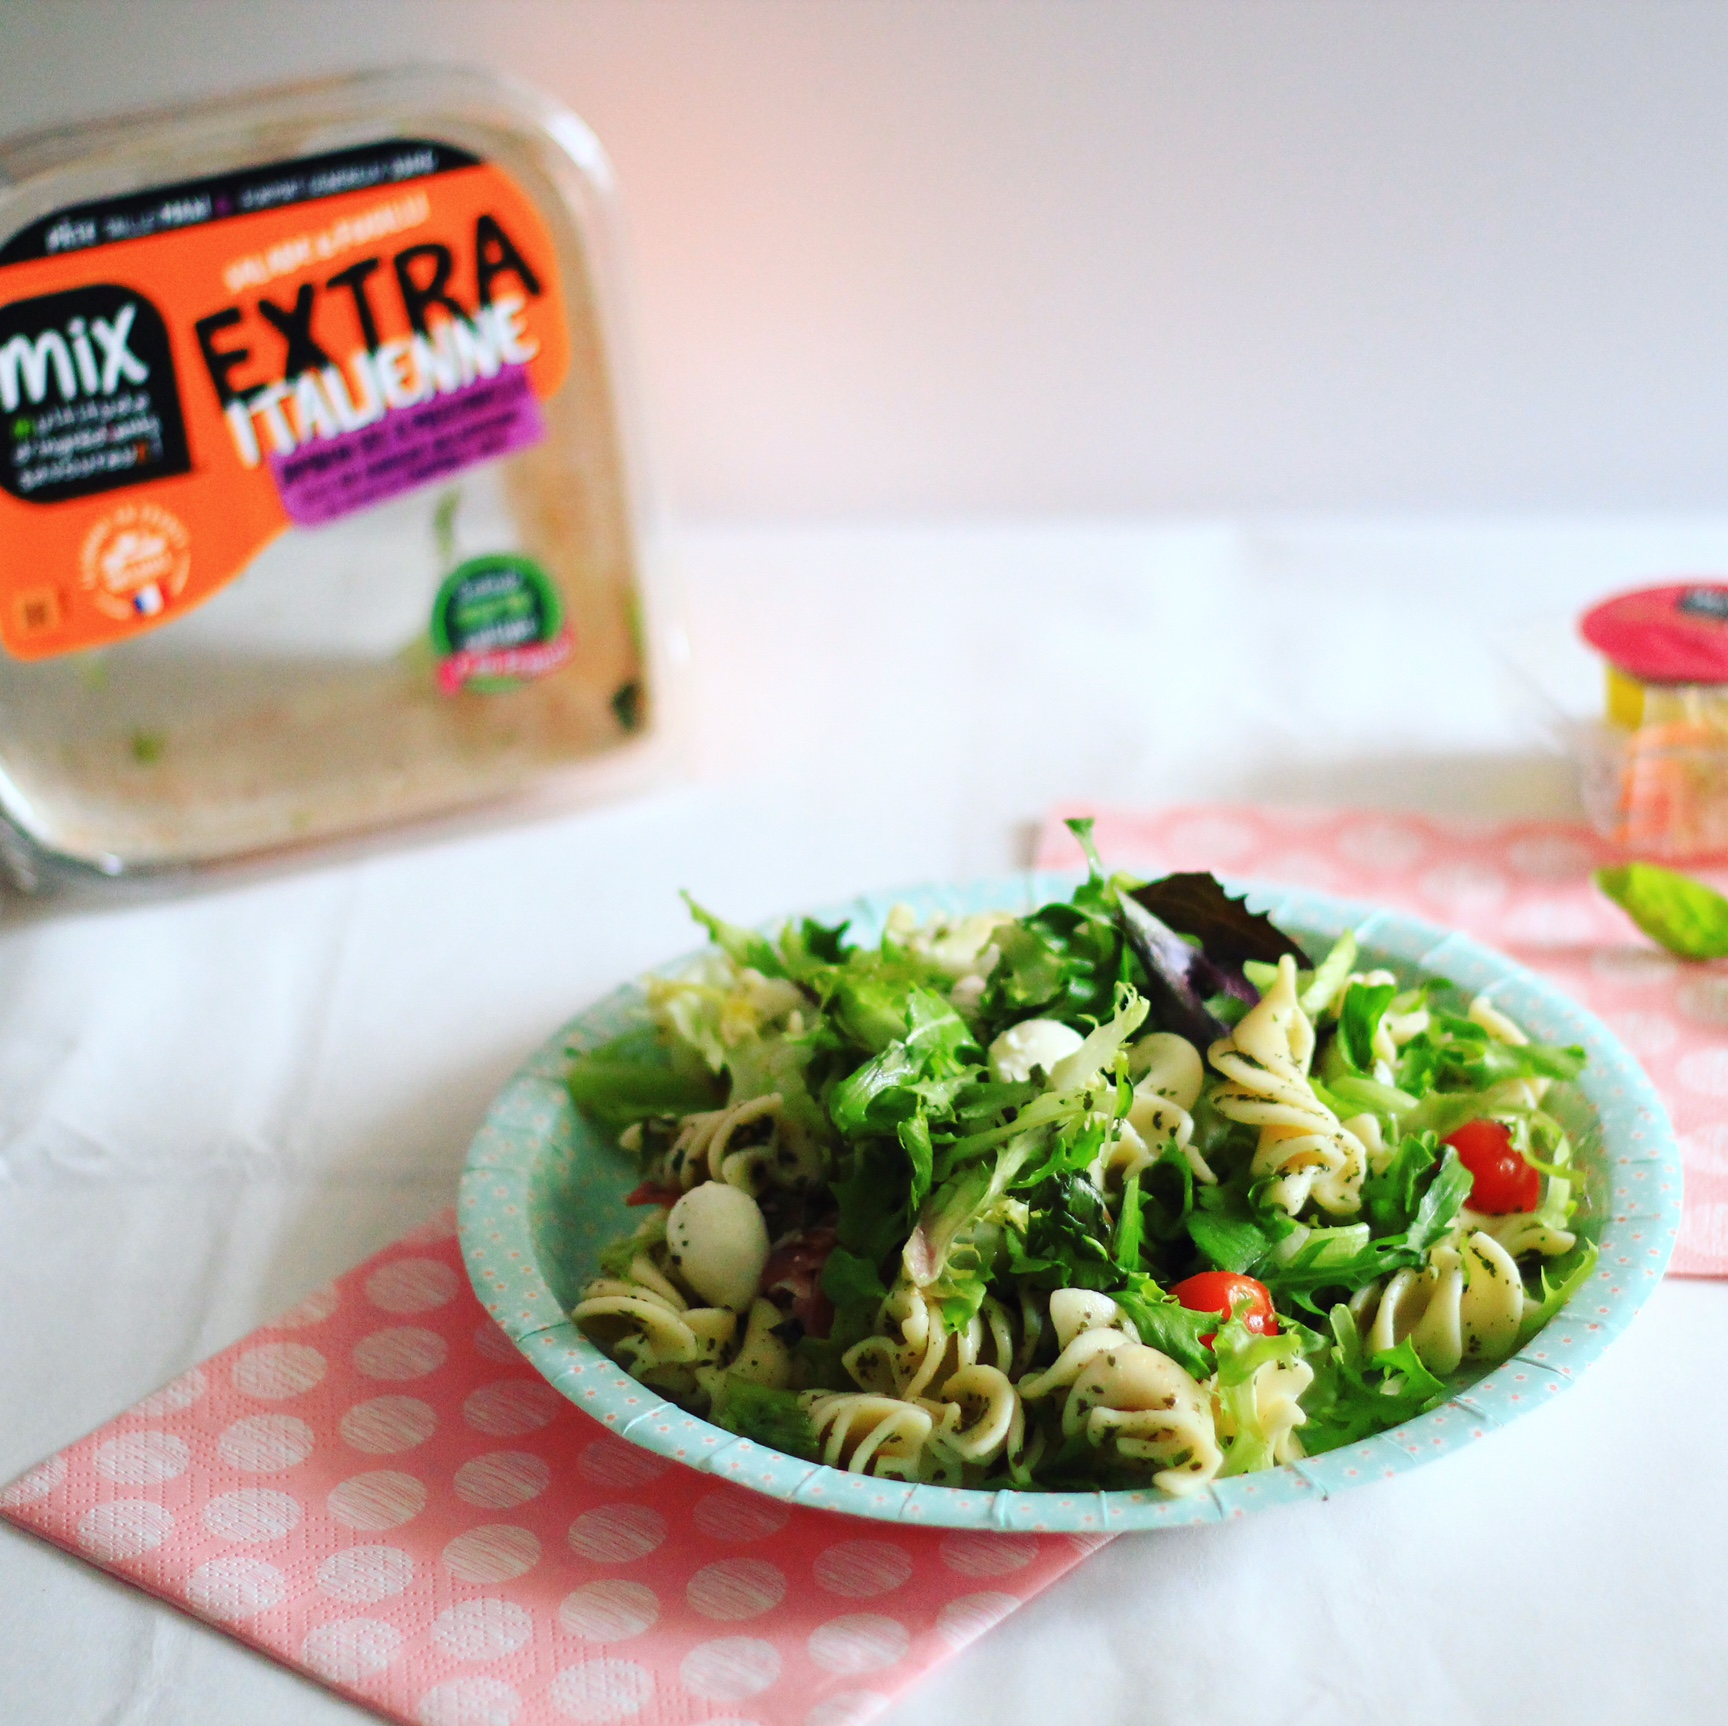 mix salade extra italienne